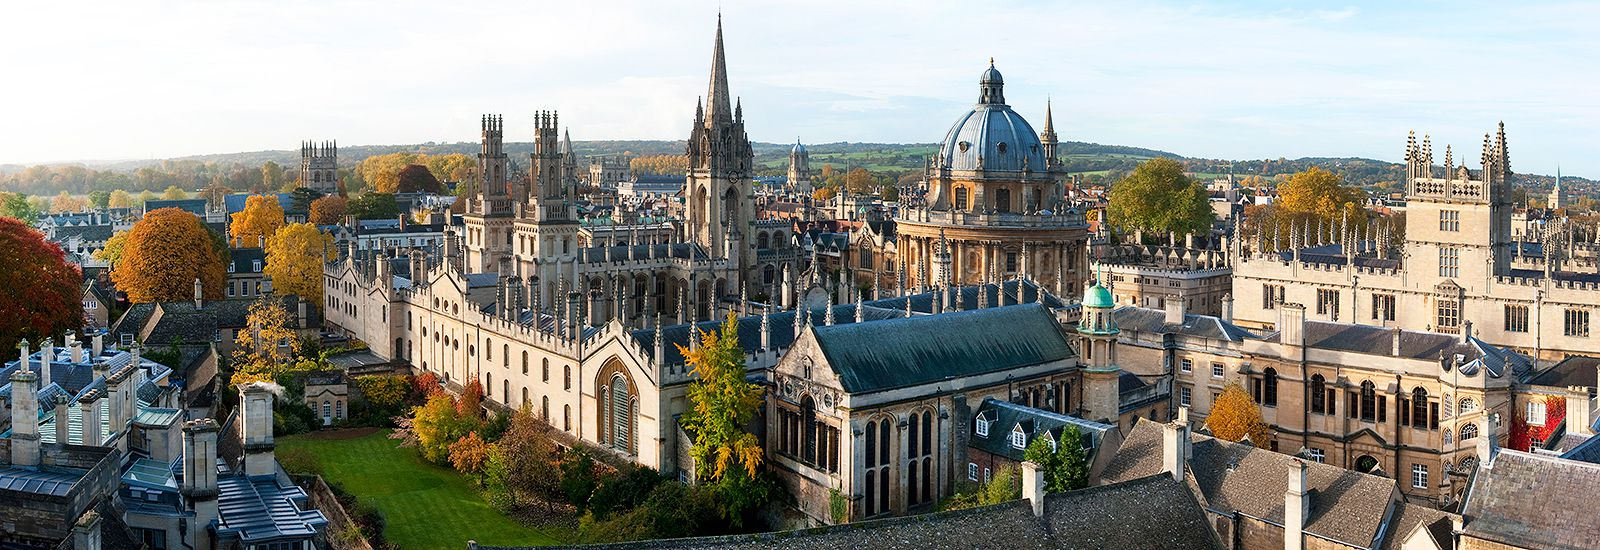 oxford-university-secret-world